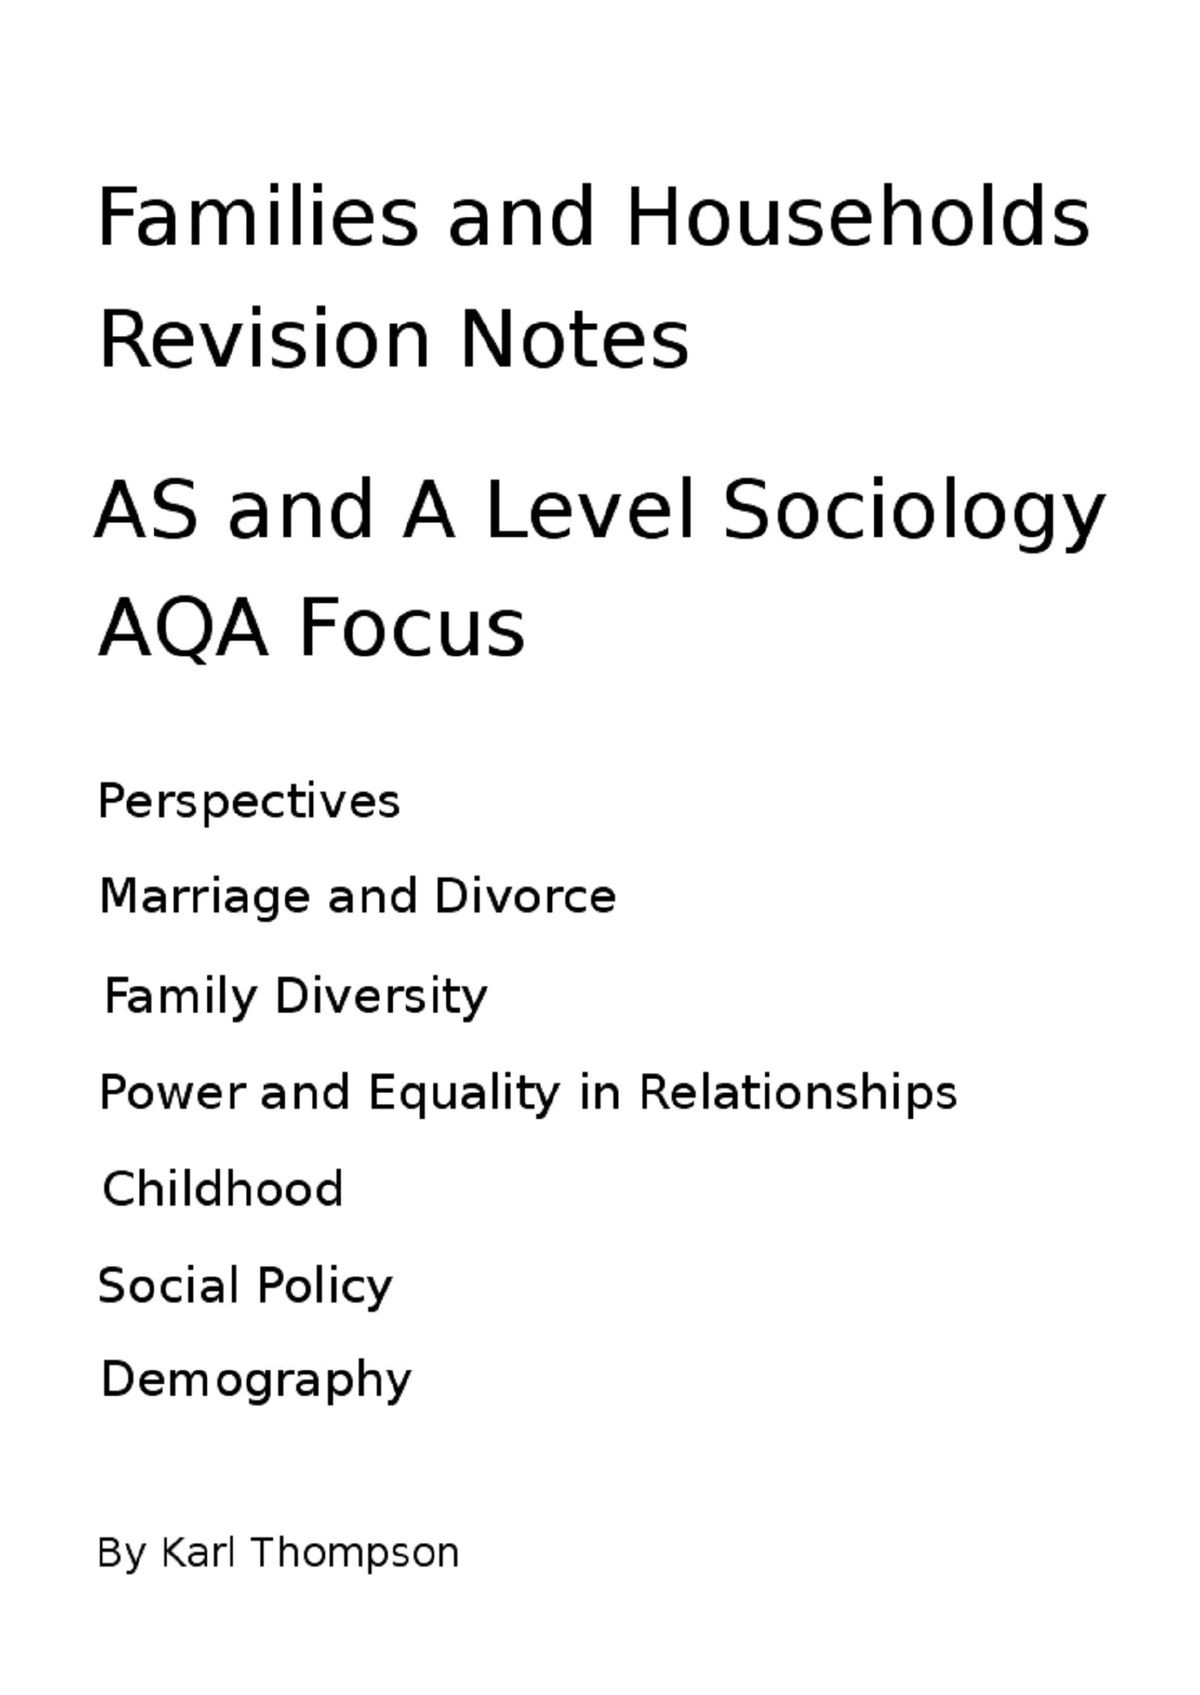 020 Essay Example Families And Households Revision Notes For As Level Sociology Aqa Focus Family Incredible Values In Telugu Richard Rodriguez Full